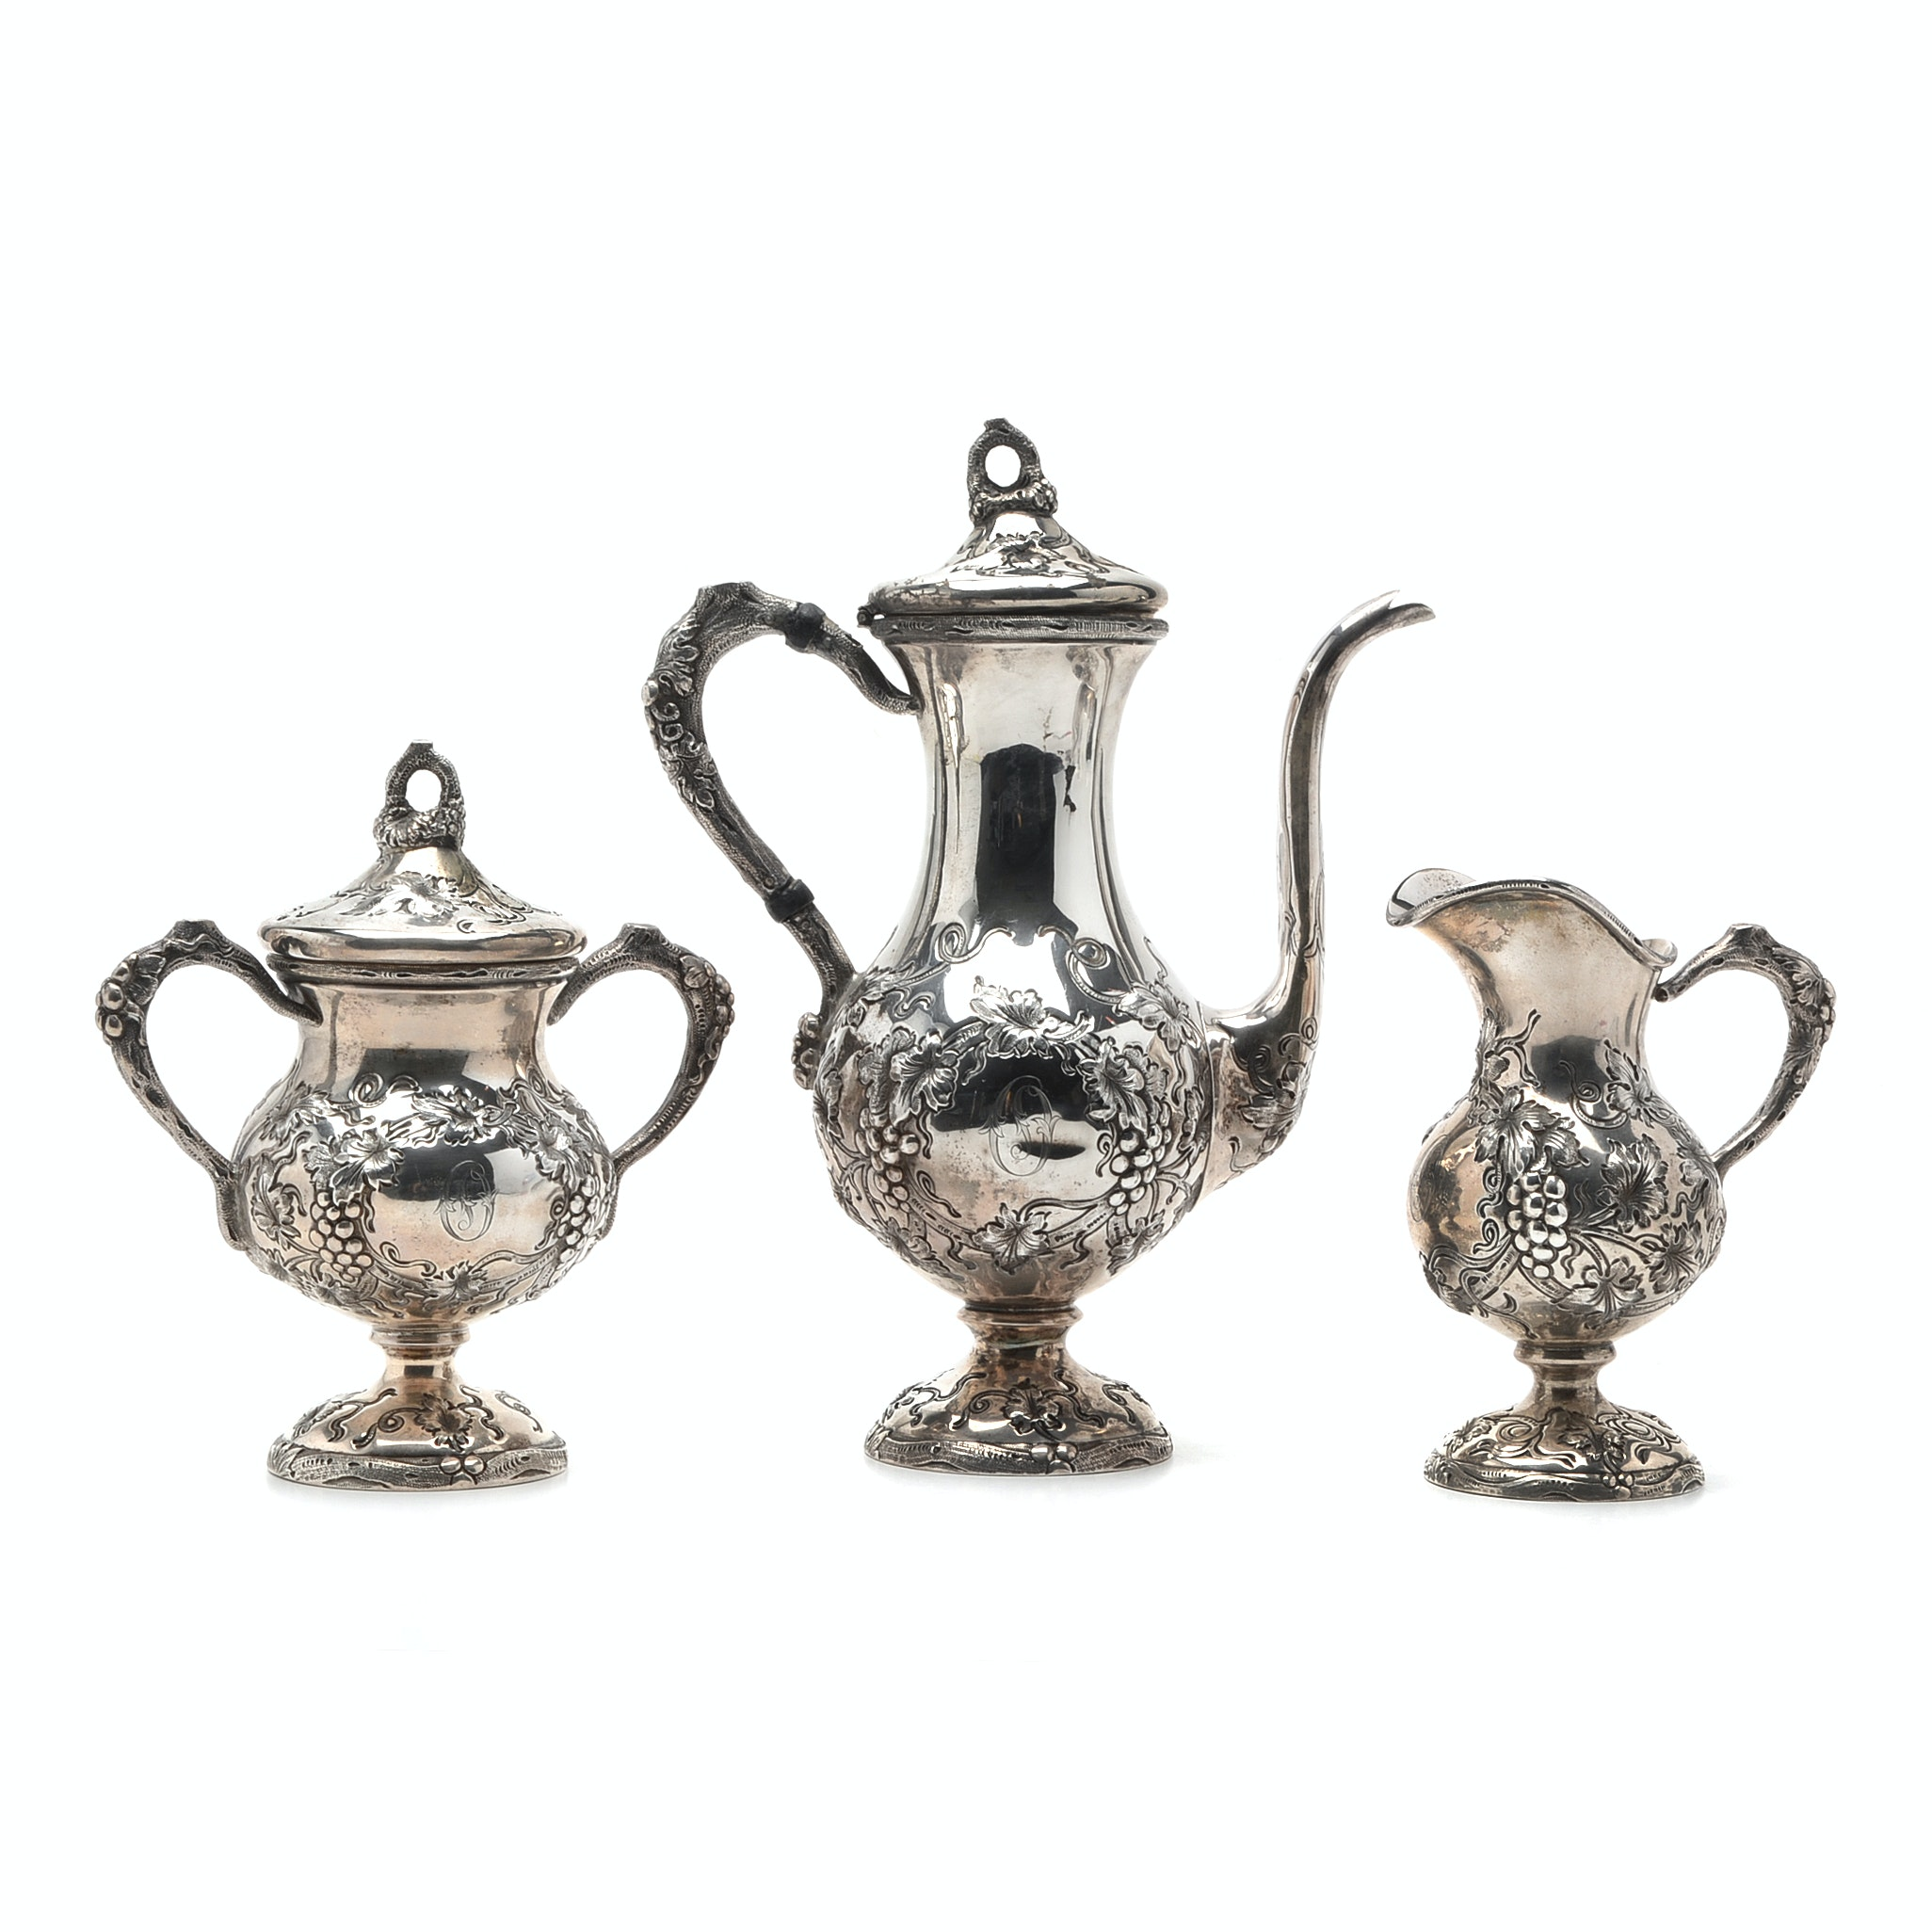 Early 20th Schofield Company Three-Piece Sterling Silver Coffee Set